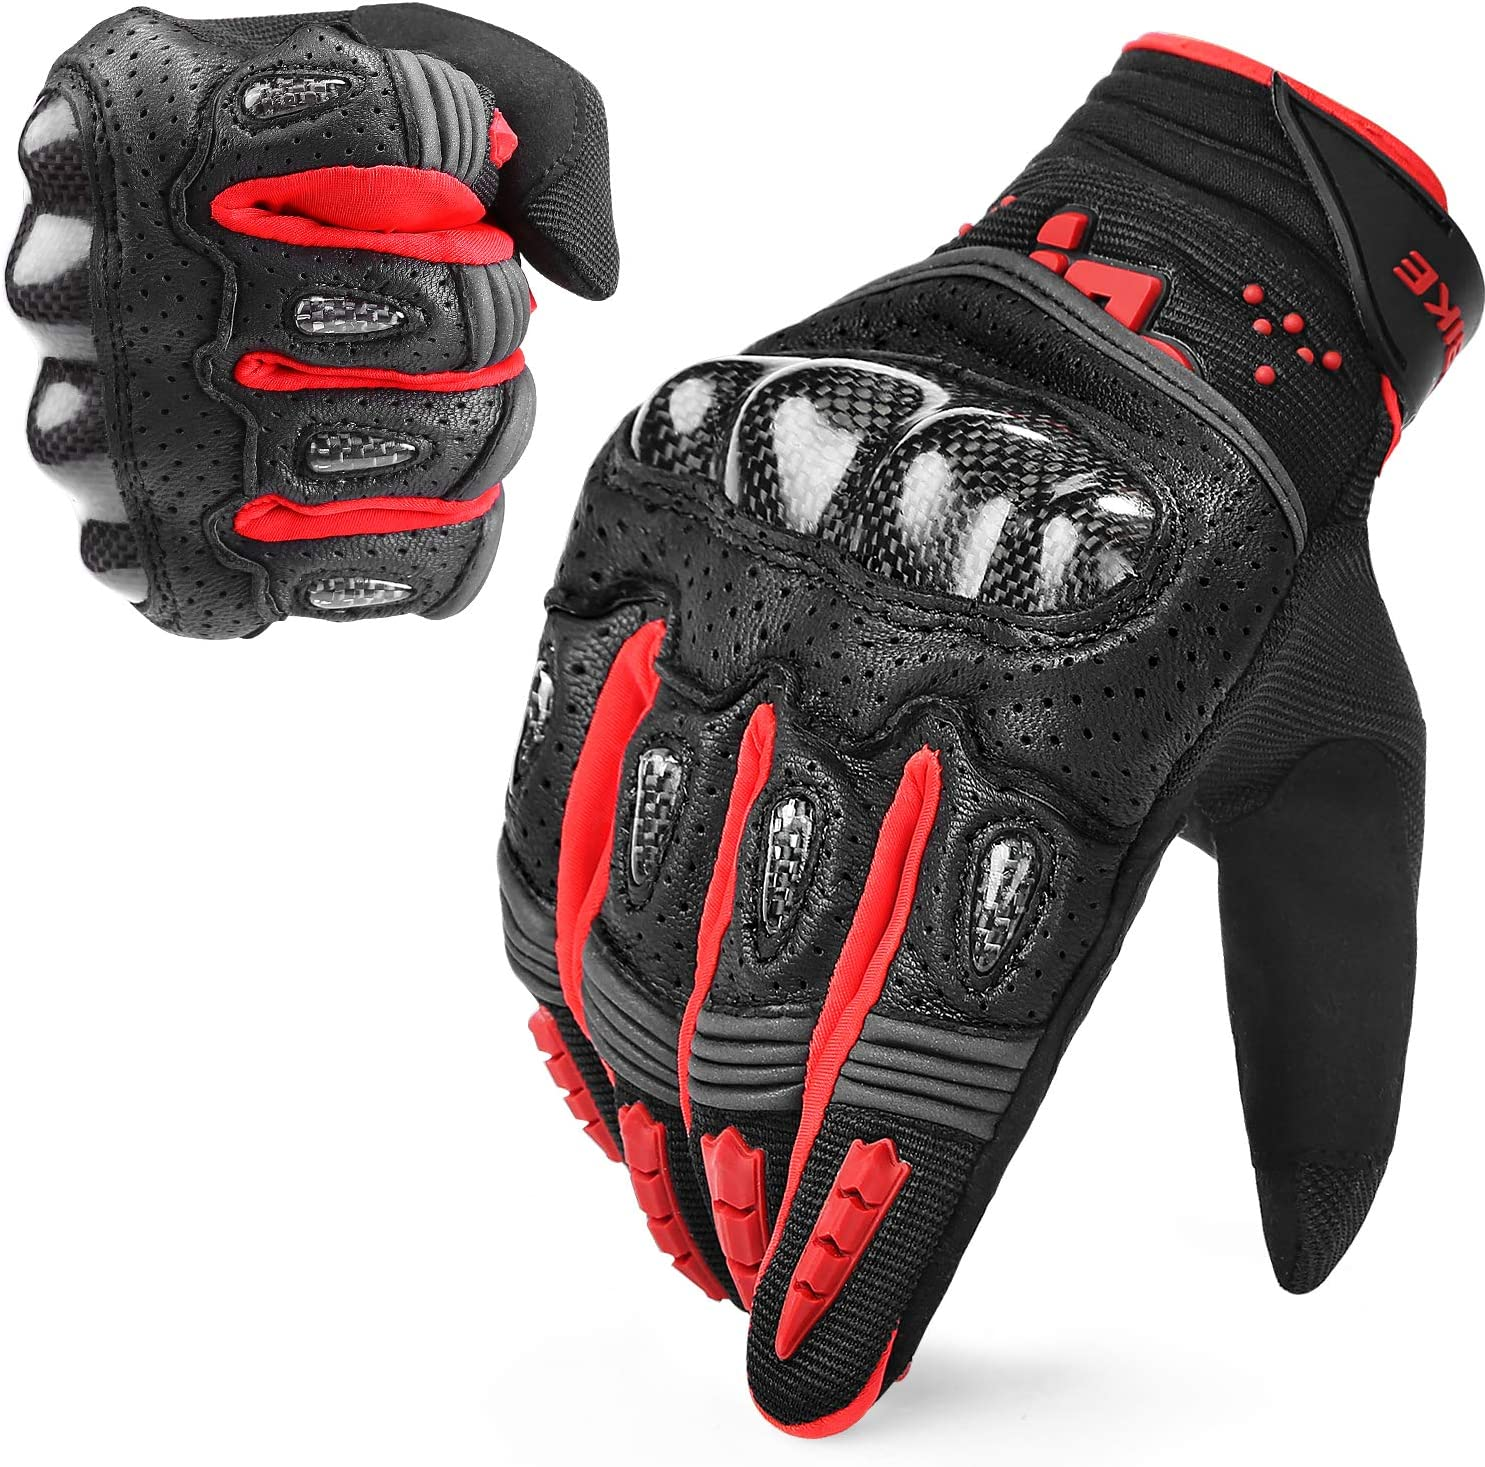 INBIKE Leather Motorcycle Riding Gloves Touchscreen with Carbon Fiber Hard Knuckle for Men Black X-Large